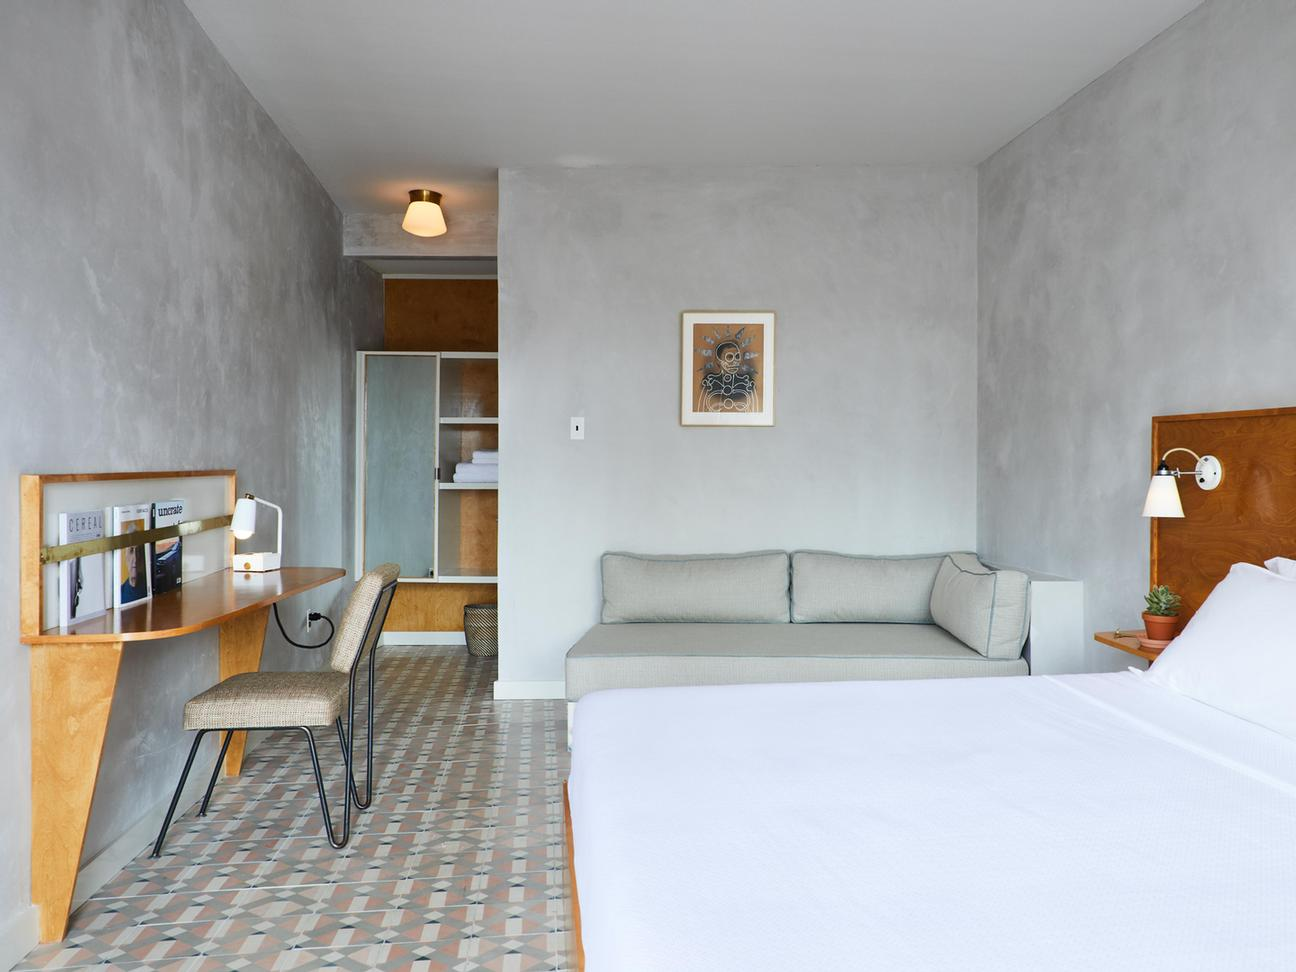 Photos Courtesy Of Nicole Franzen For Design Hotels™ 8 of 11